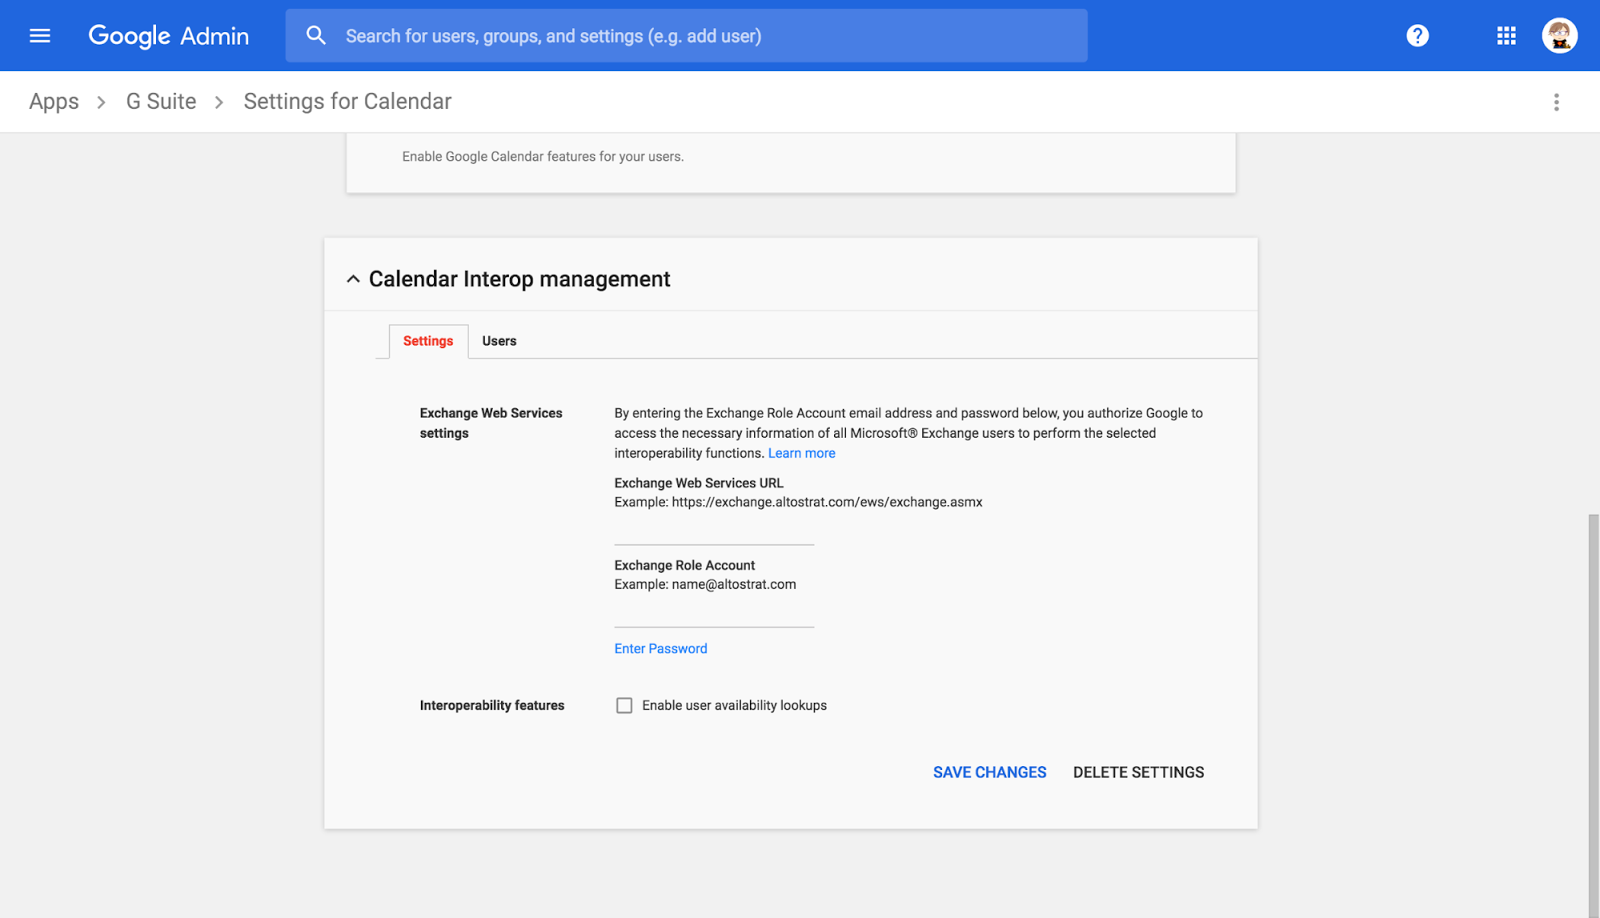 G Suite Updates Blog: Improvements to Google Calendar